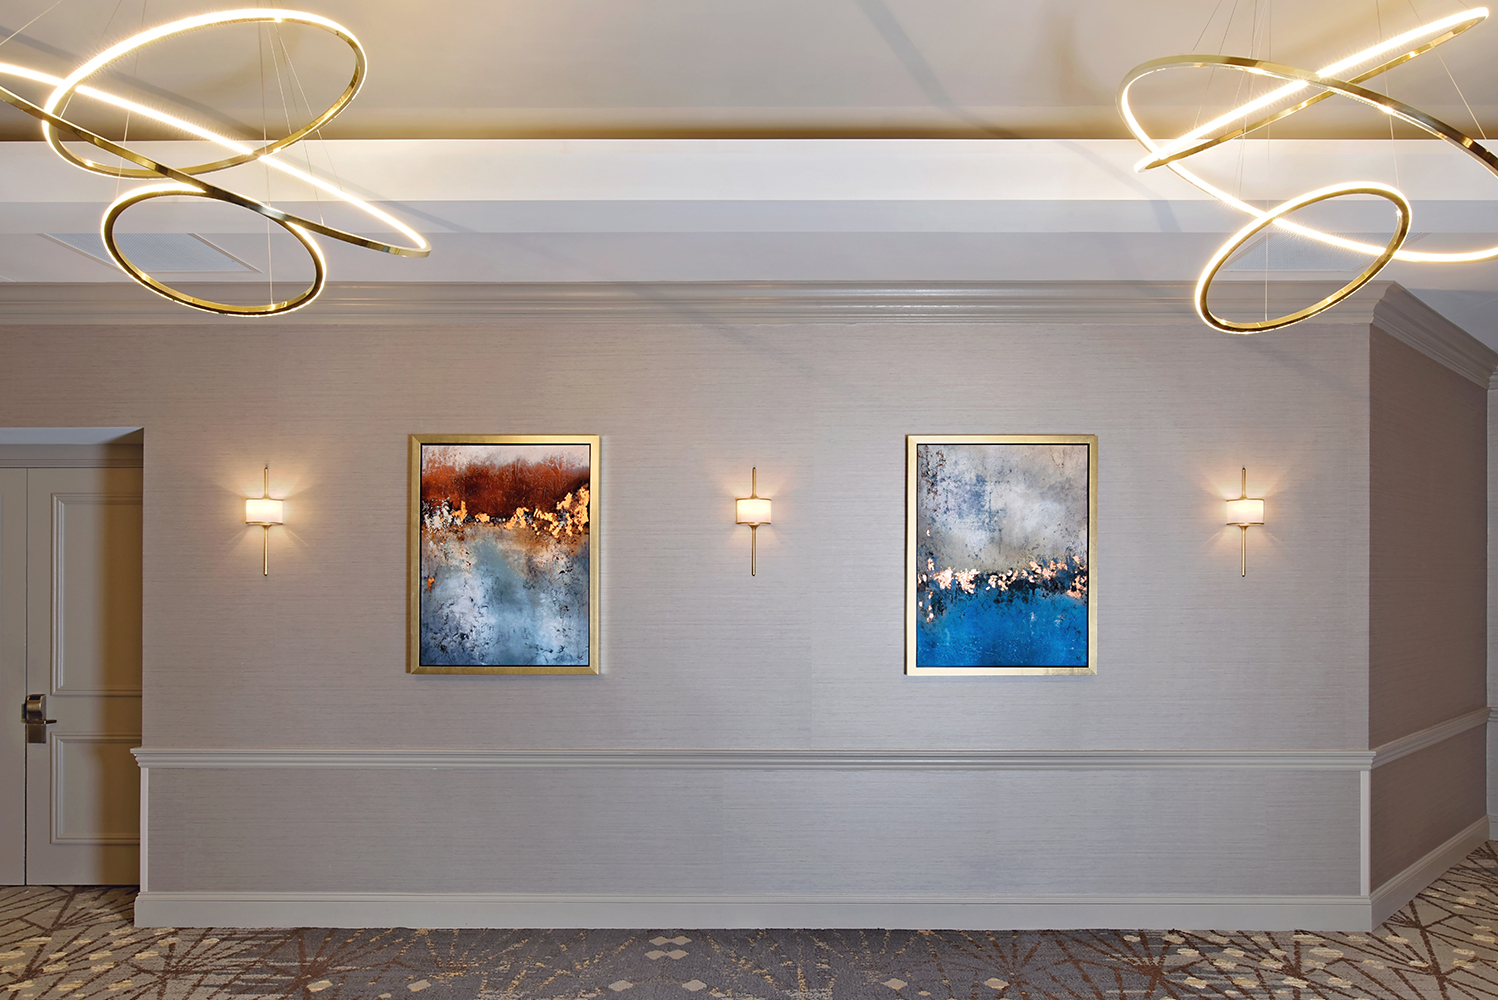 Illuminate Lighting Consultants enhanced the space with accent lighting.